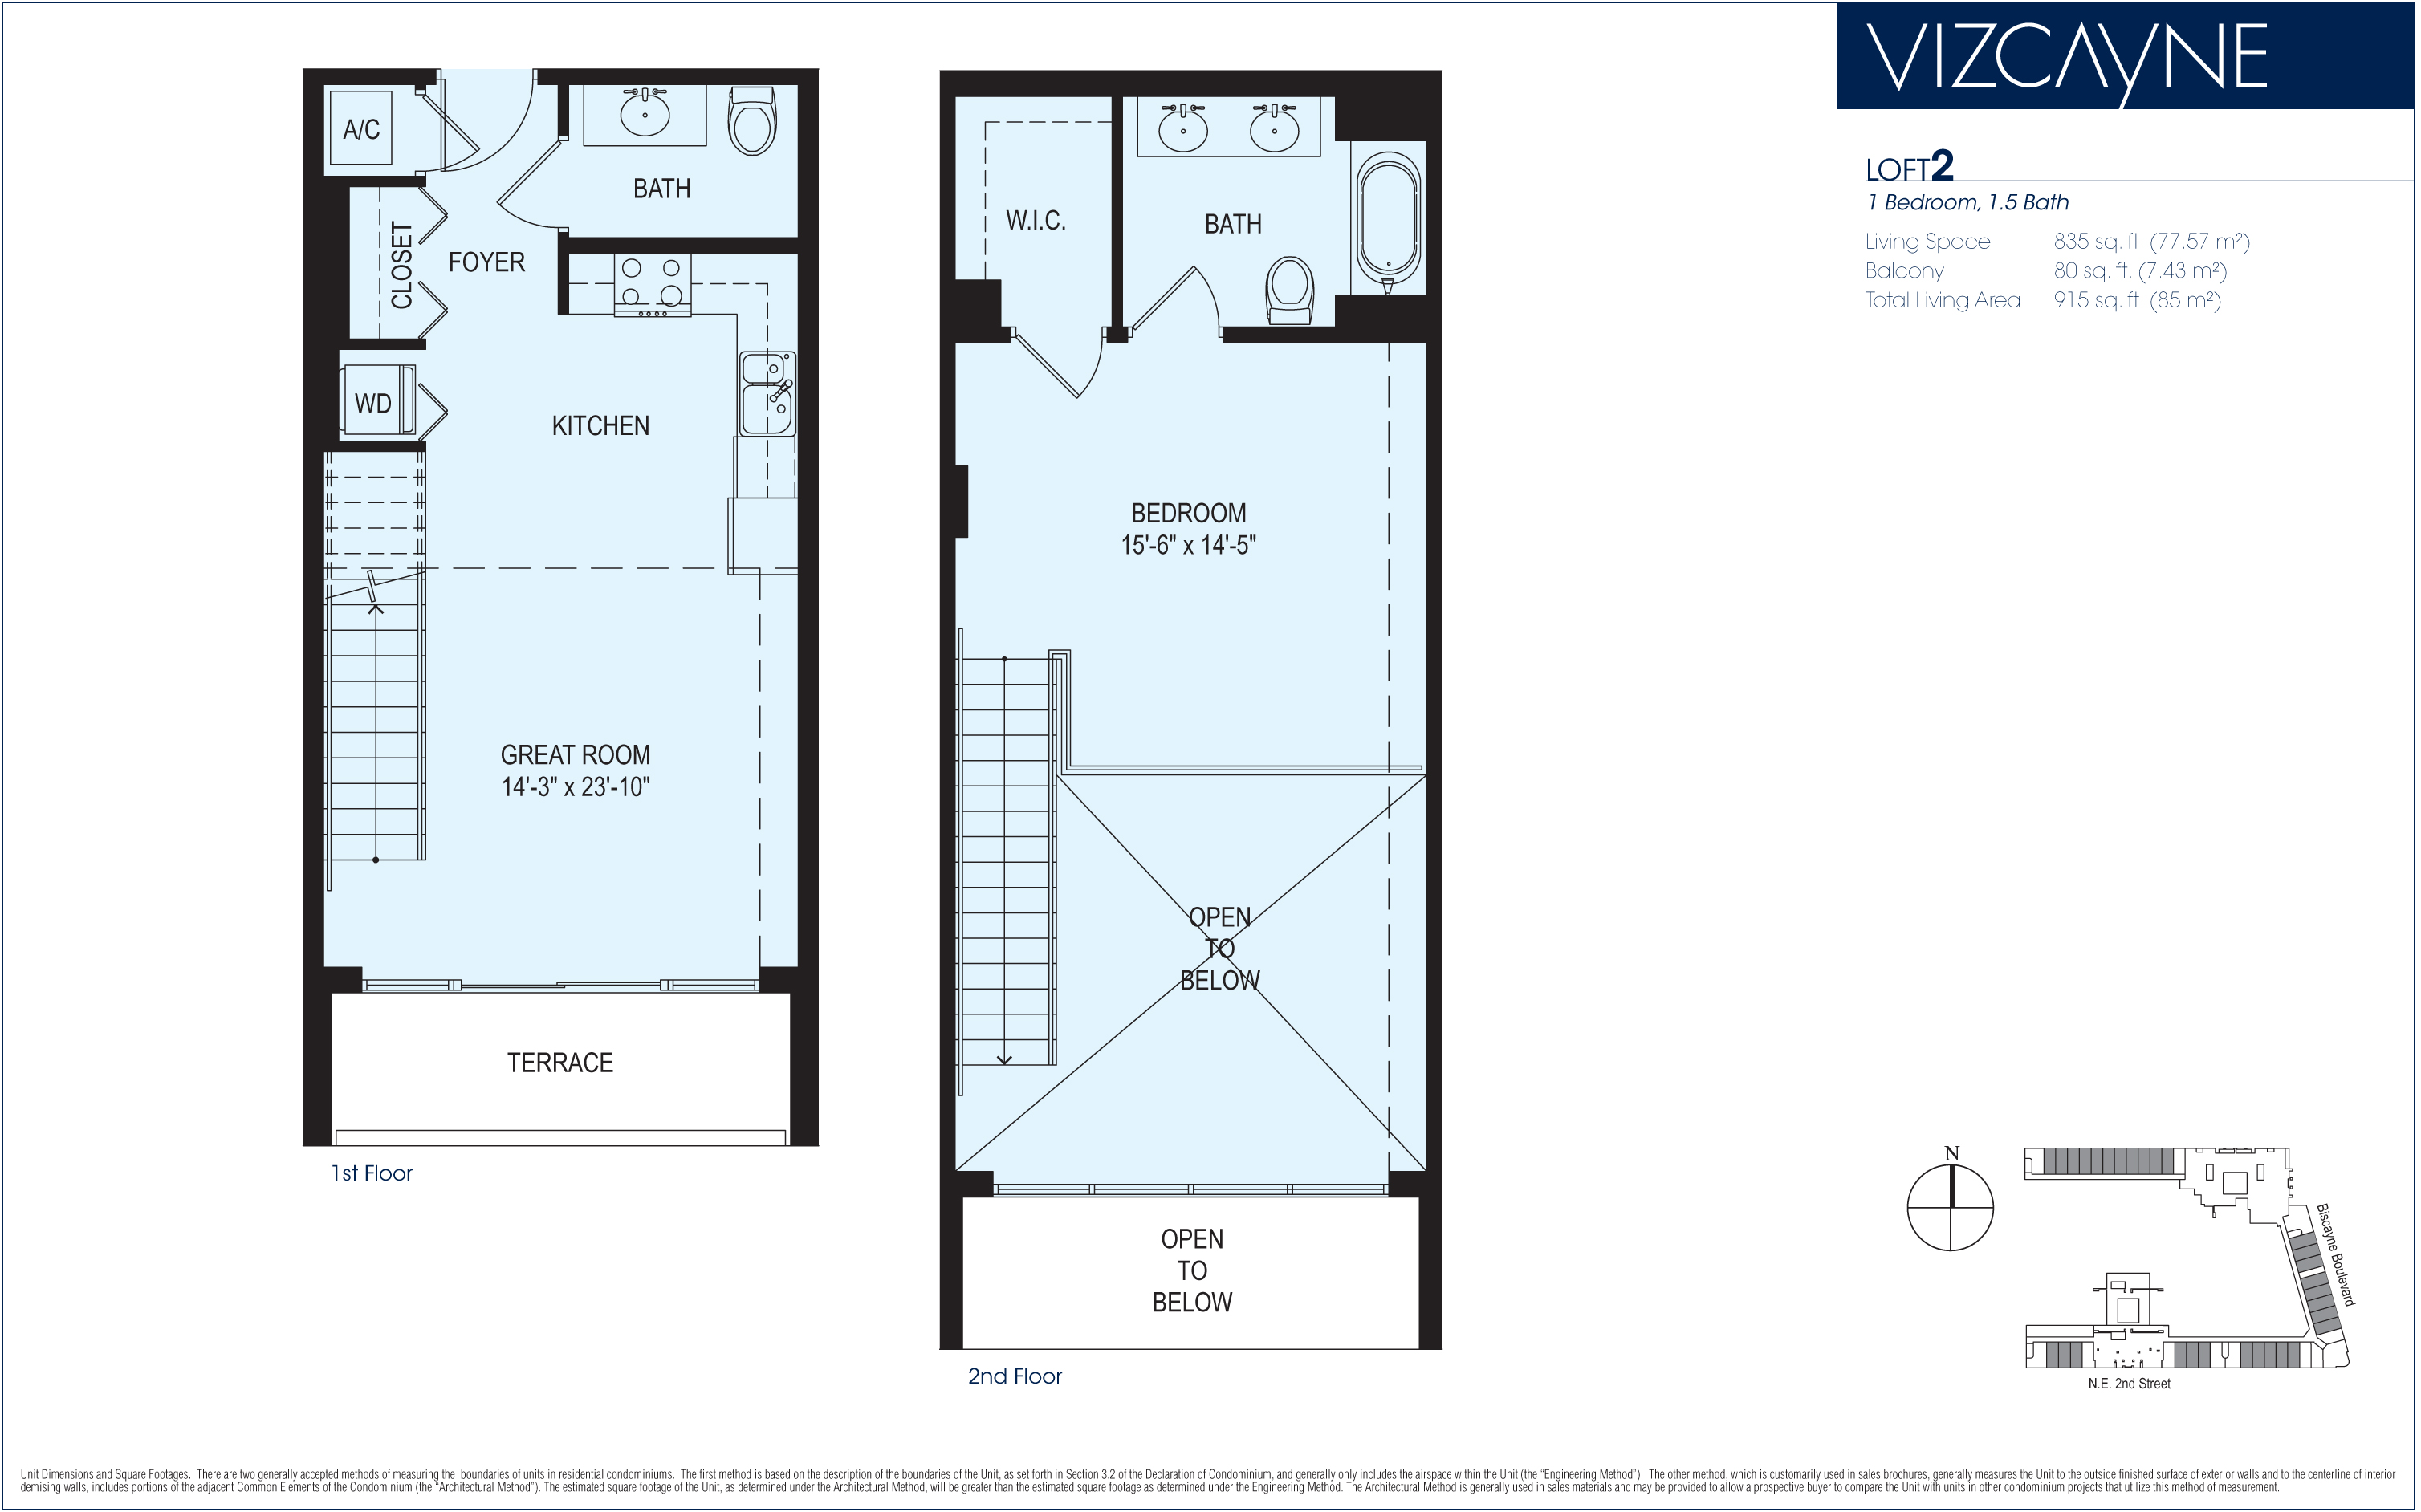 Vizcayne tower floorplans miami for 2 story 2 bedroom apartment plans